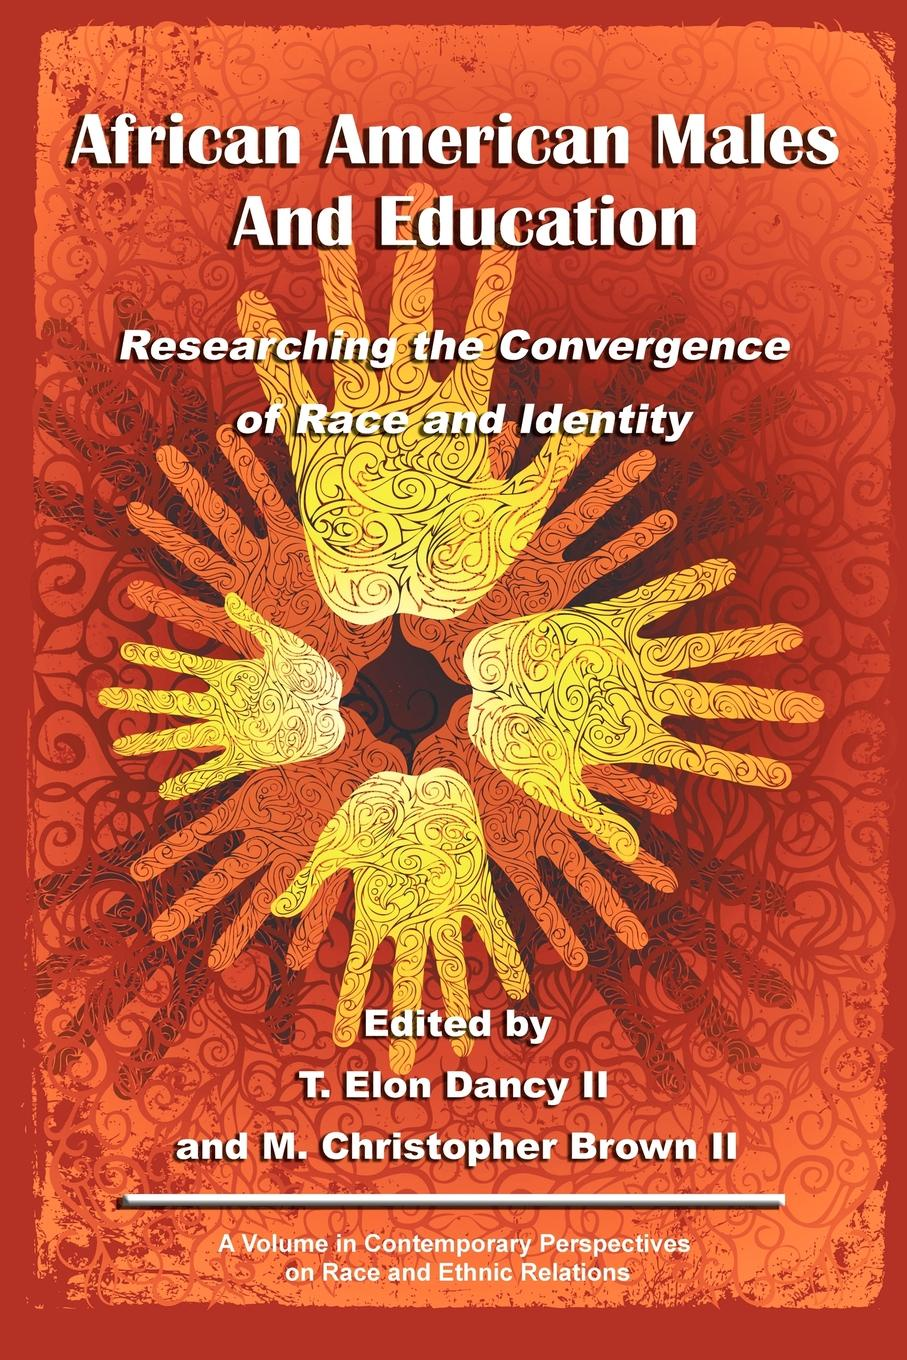 African American Males and Education. Researching the Convergence of Race and Identity jennifer cleland researching medical education